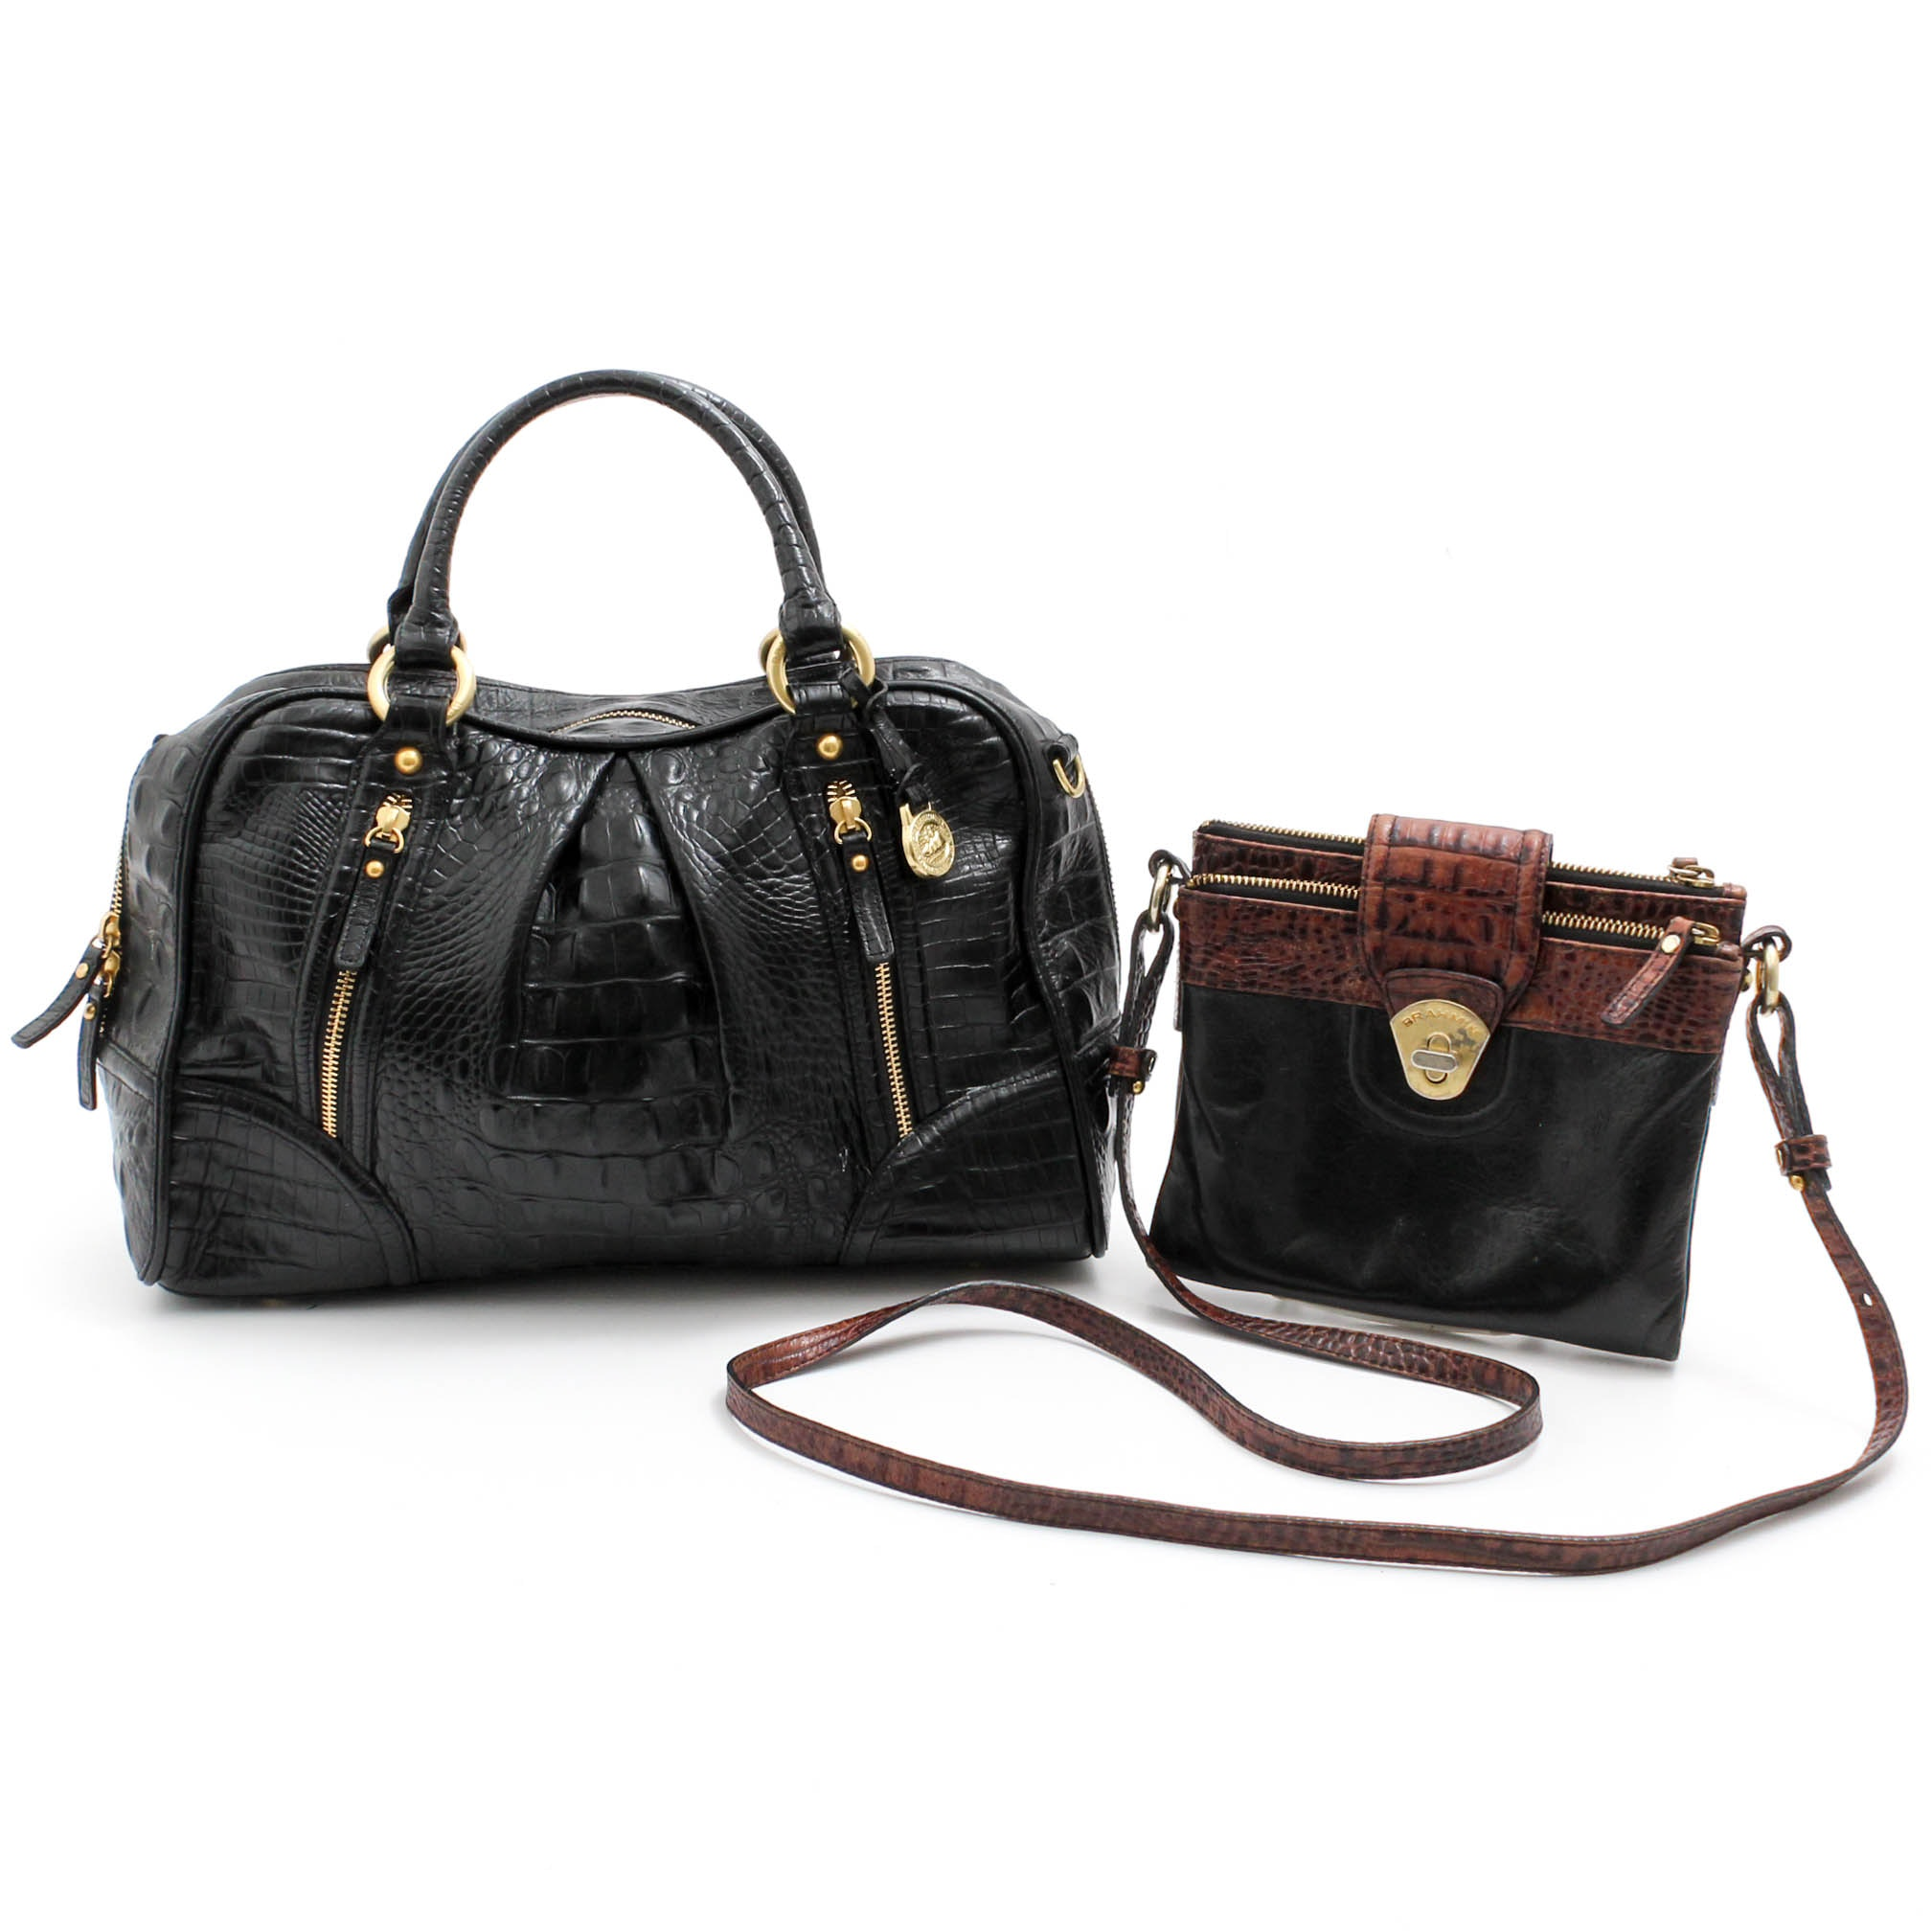 Brahmin Embossed Leather Handbags